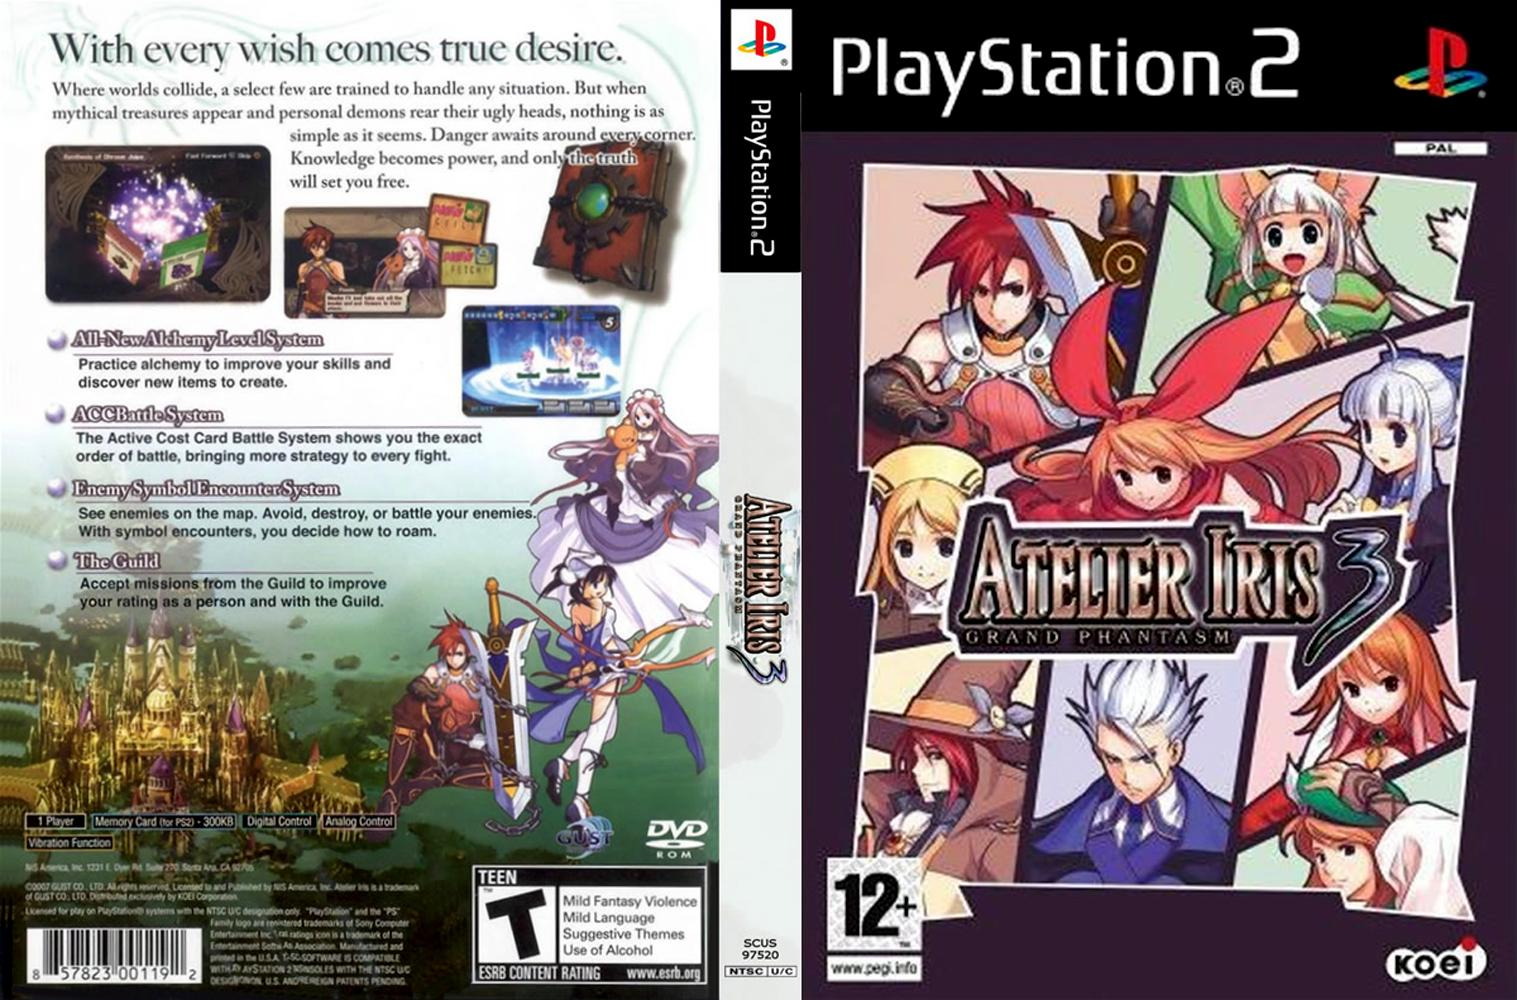 Download - Atelier Iris 3 - Grand Phantasm - PS2 - ISO